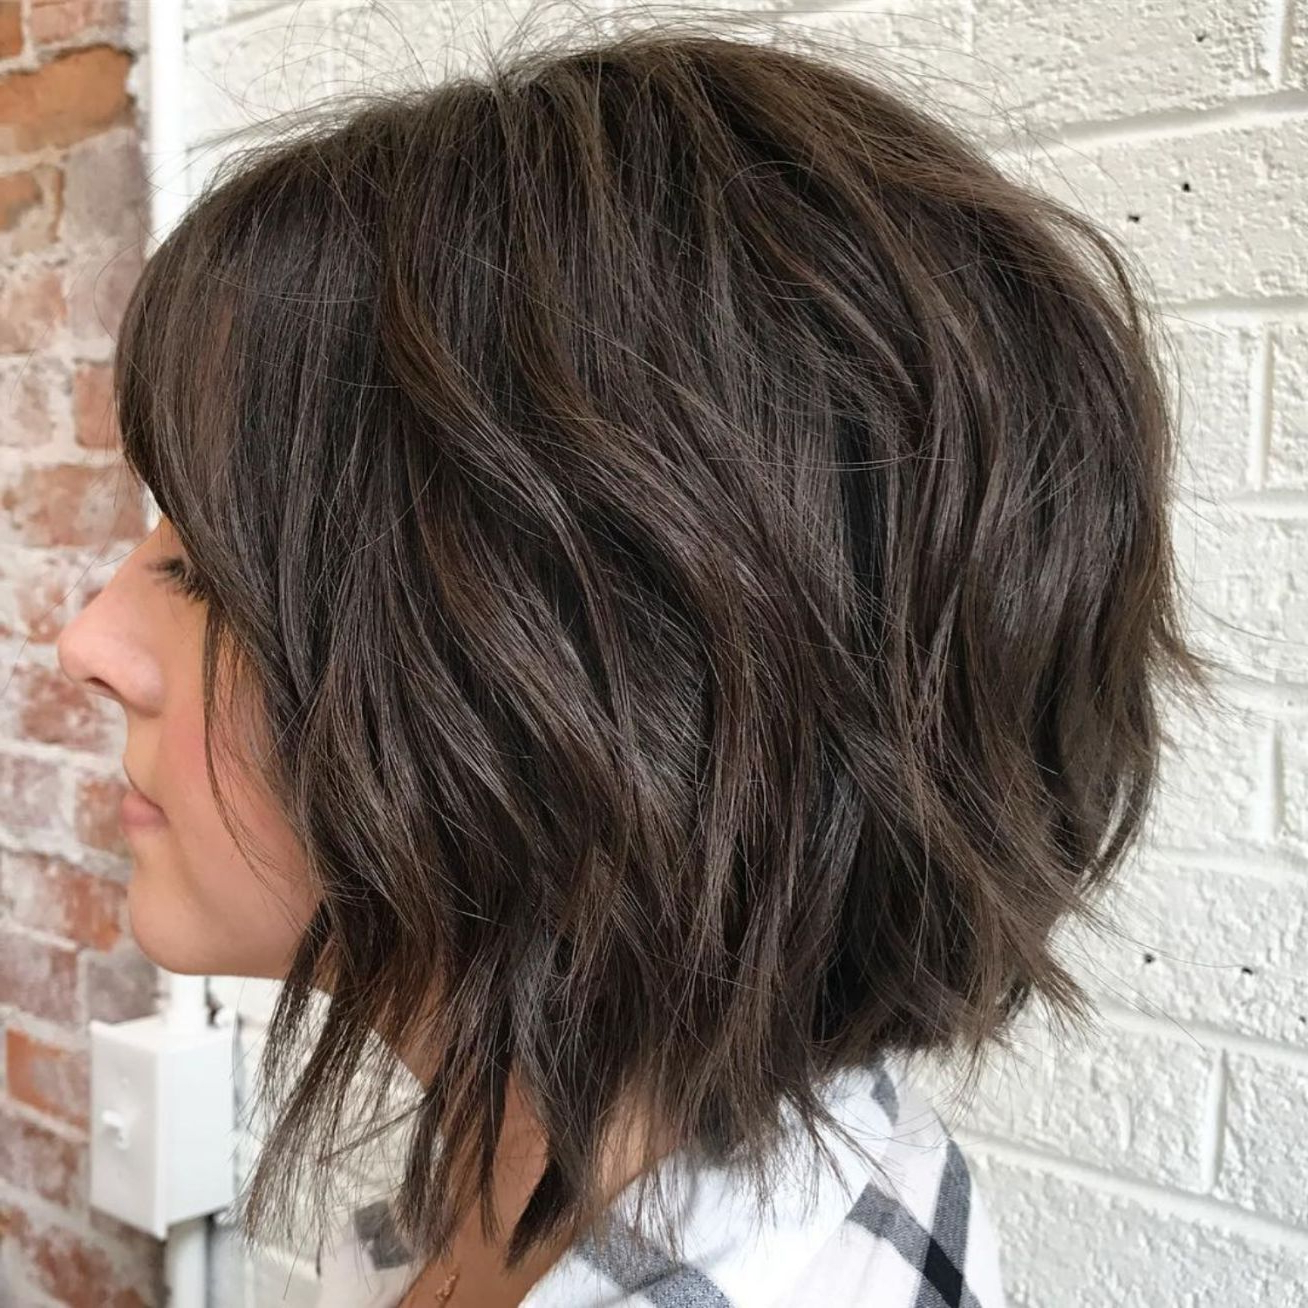 70 Fabulous Choppy Bob Hairstyles In 2019 | Choppy Bob Inside Short Chopped Bob Hairstyles With Straight Bangs (Gallery 7 of 20)